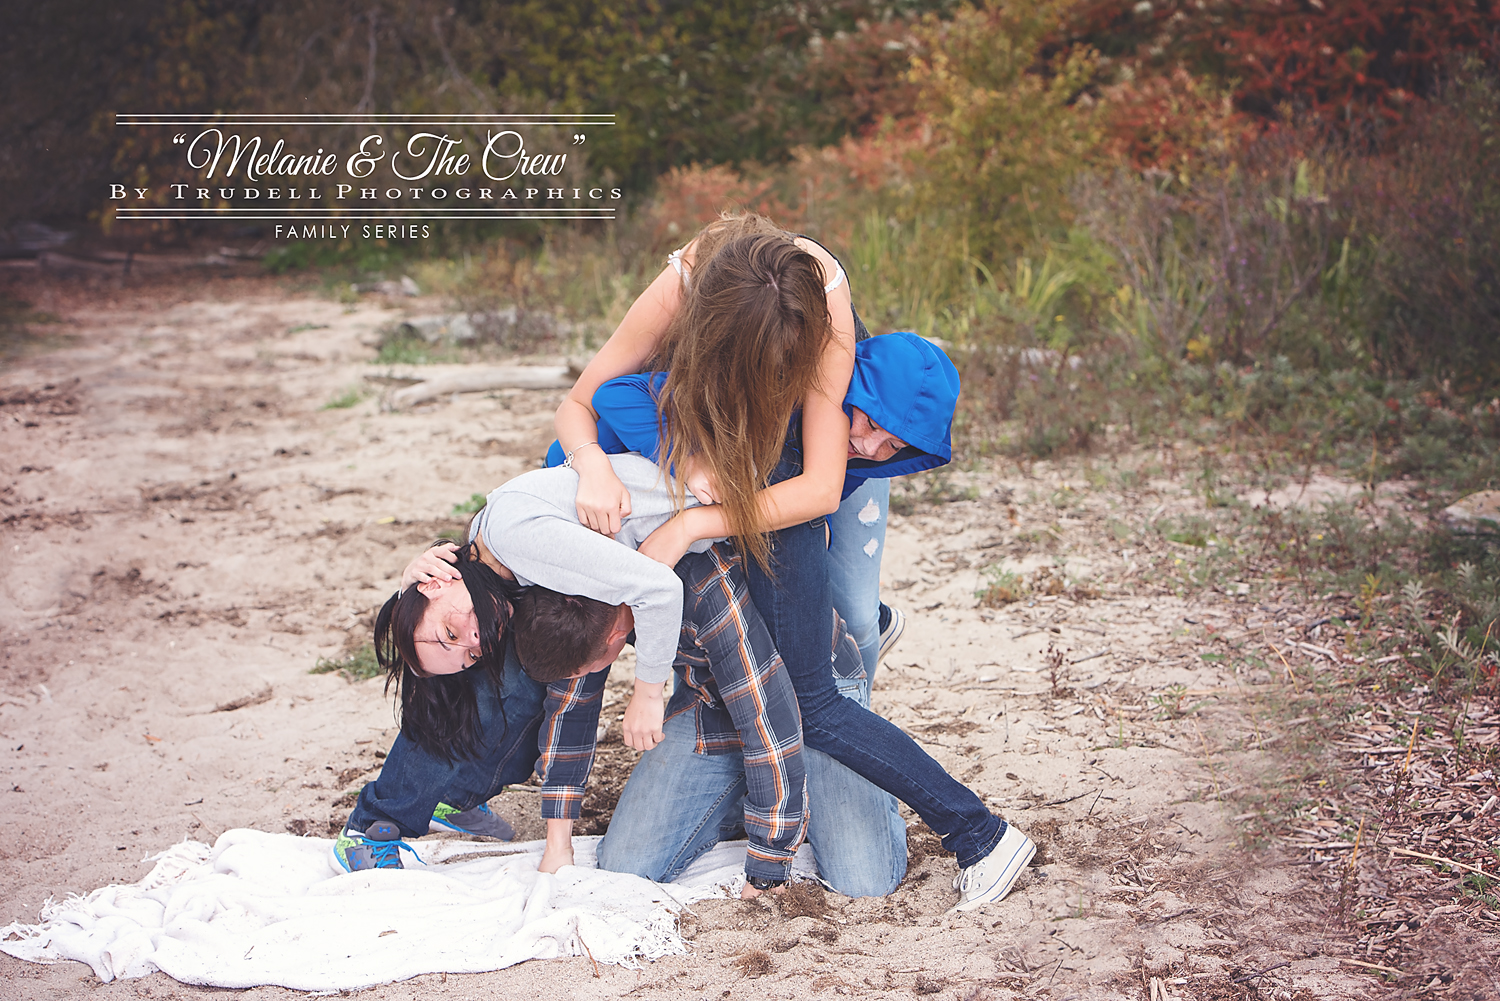 There are FOUR people....count them, 1, 2, 3, 4 people in this little ball in the sand.